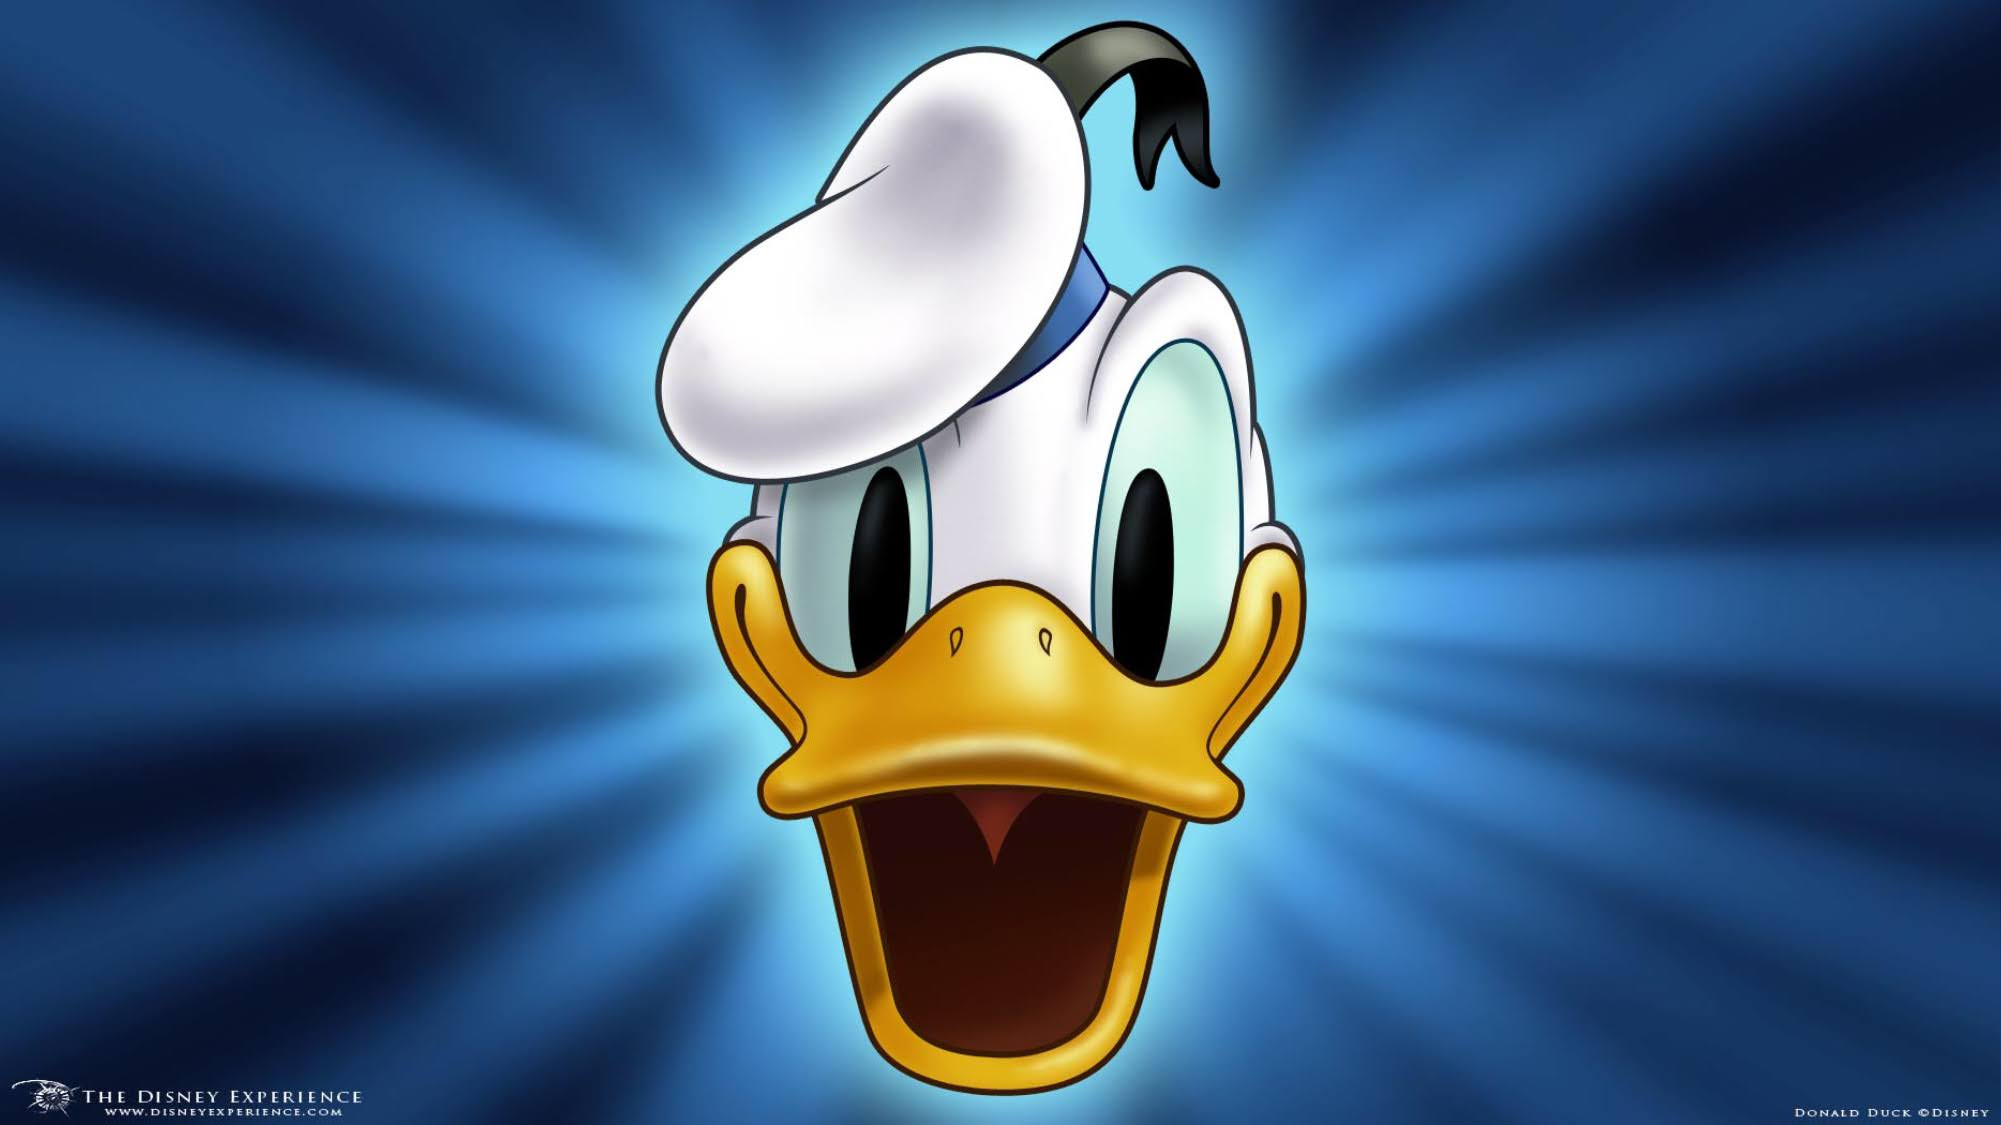 donald duck song disney wiki fandom powered by wikia